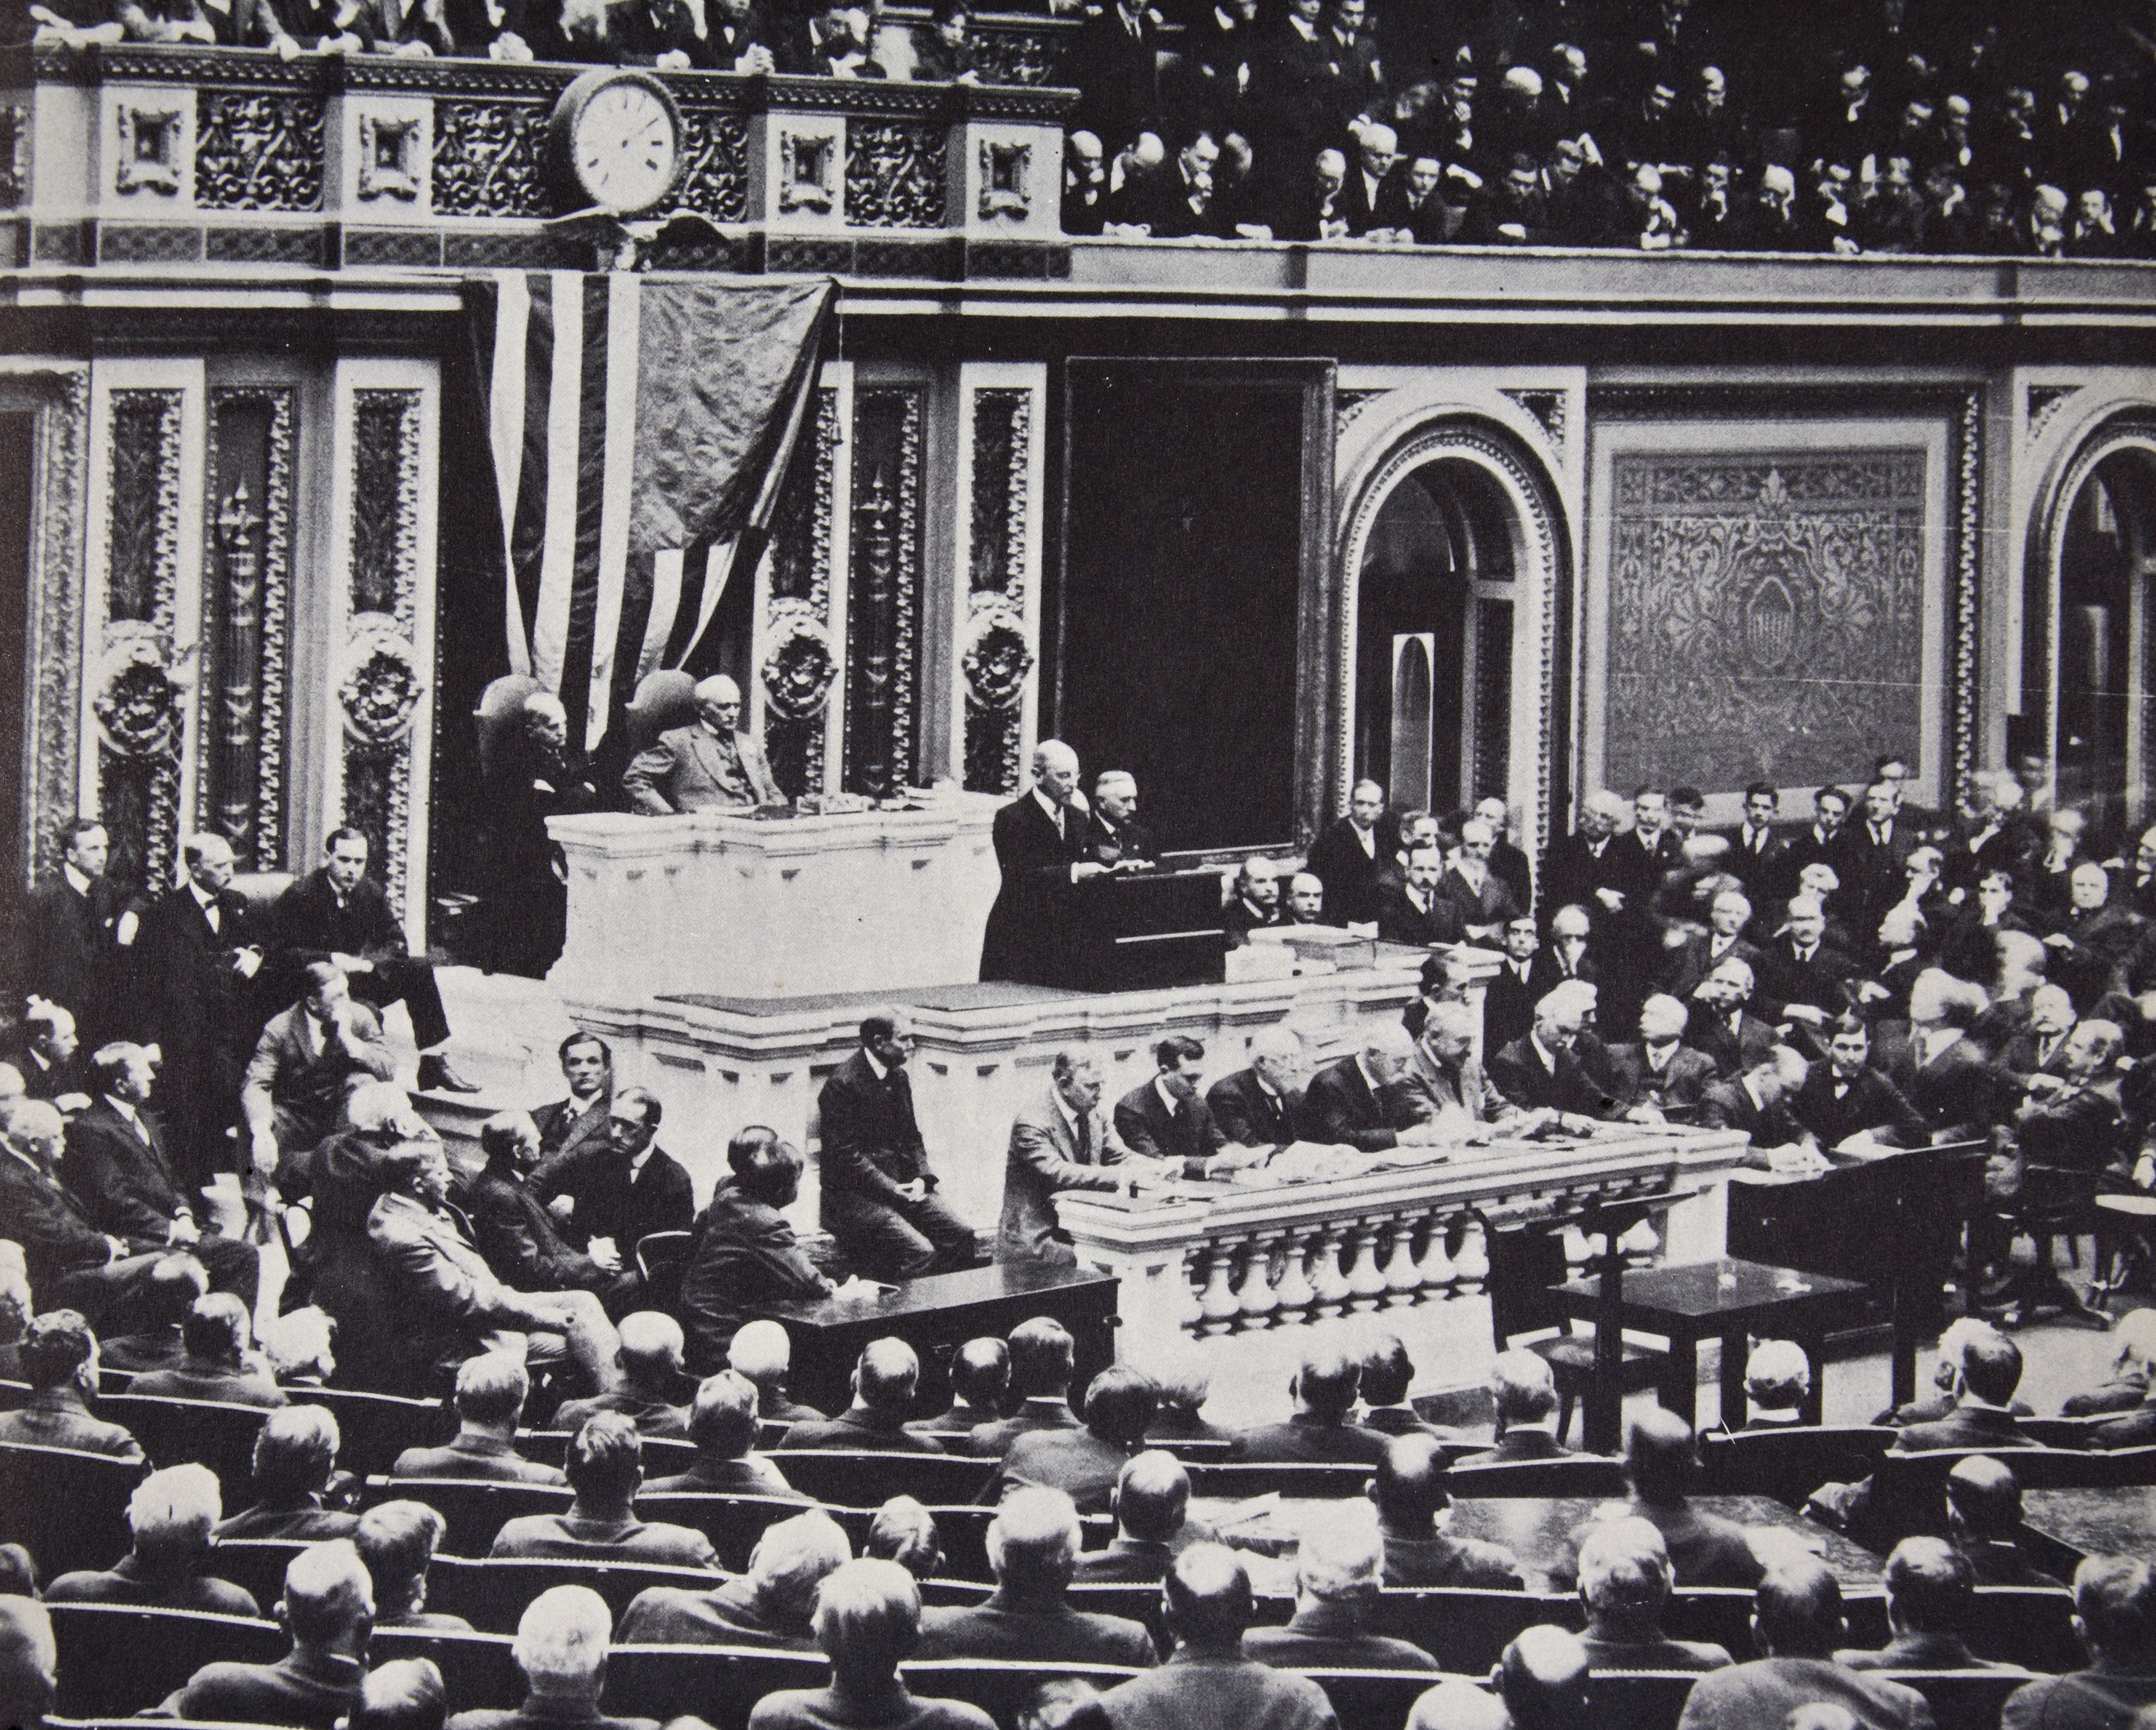 President Wilson In Congress Recommending The US Enter The War Against Germany 1917